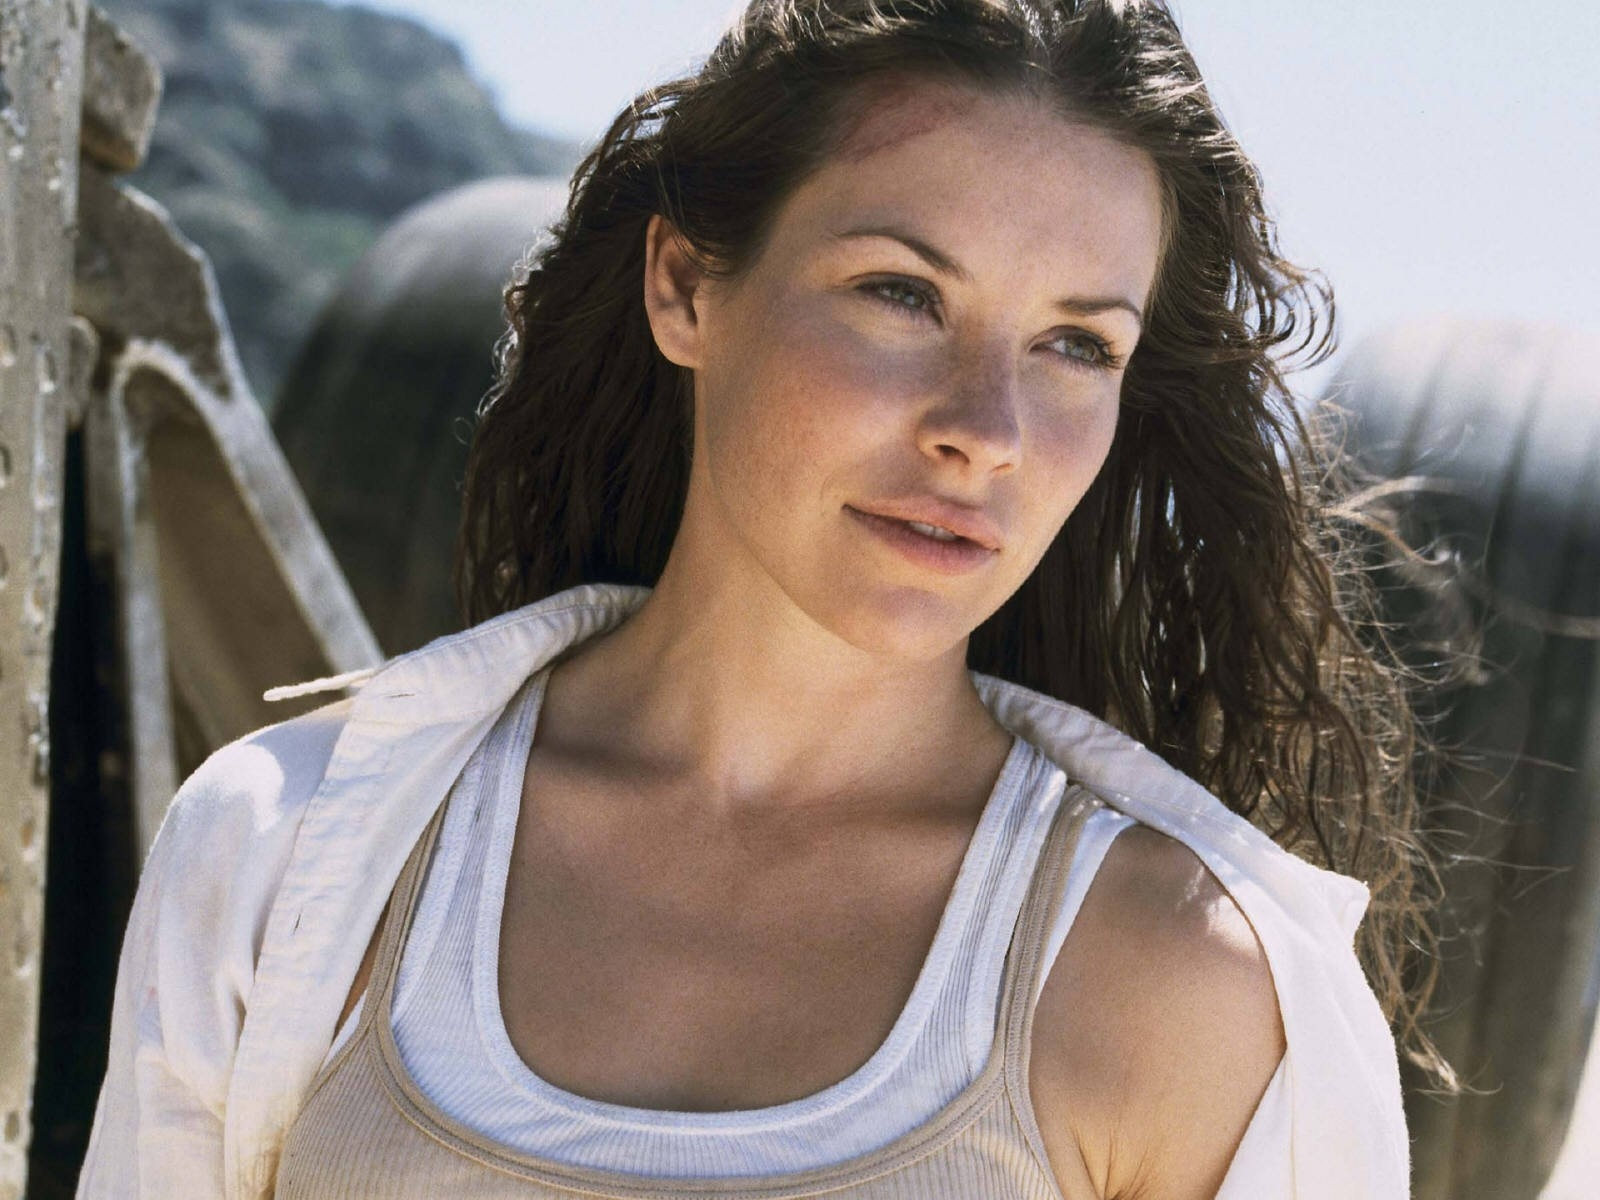 Wallpaper di Evangeline Lilly nel serial tv Lost